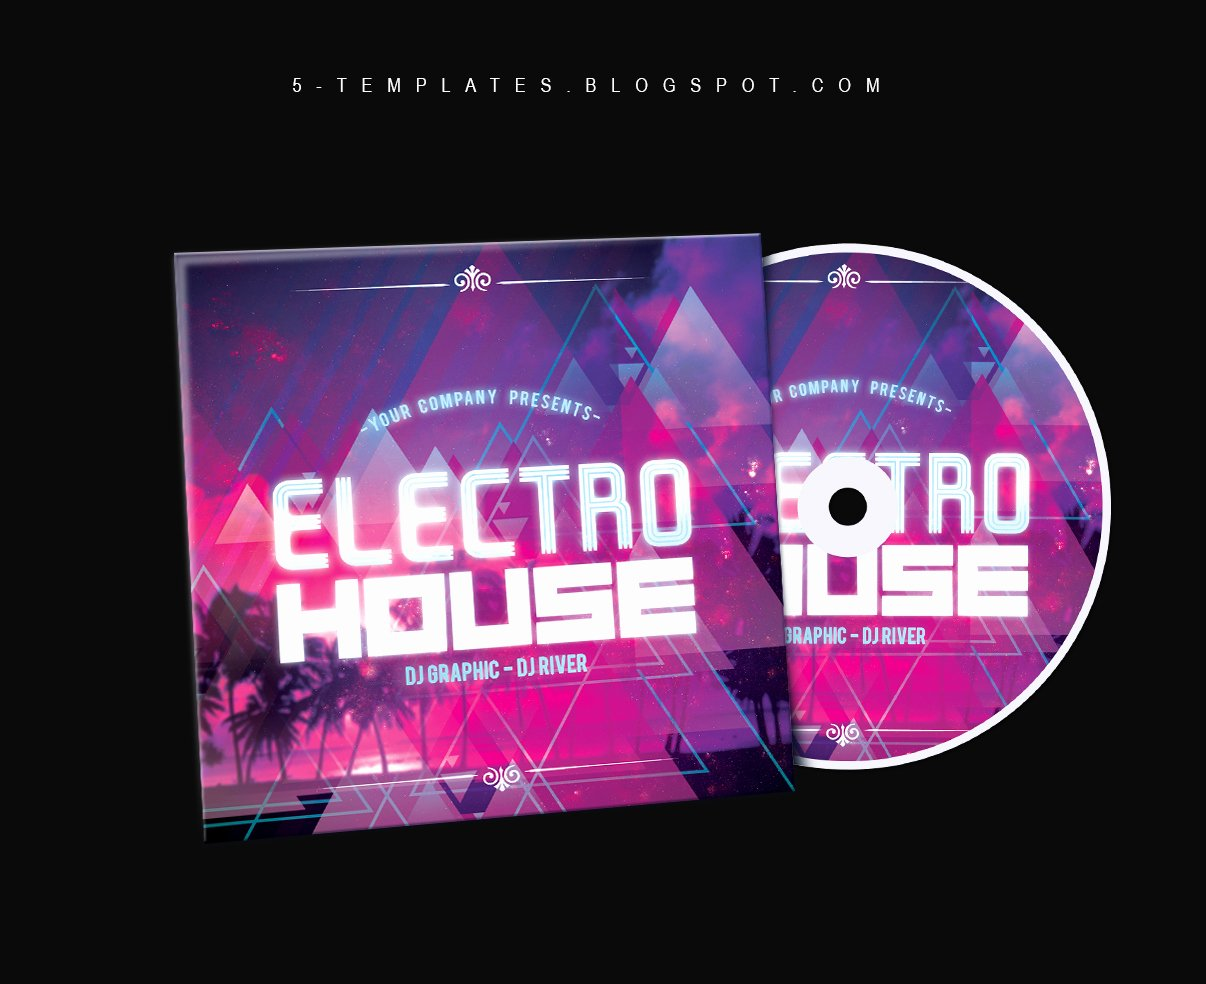 Cd Cover Template Psd Best Of Electro House Cd Cover Free Psd Template by Klarensm On